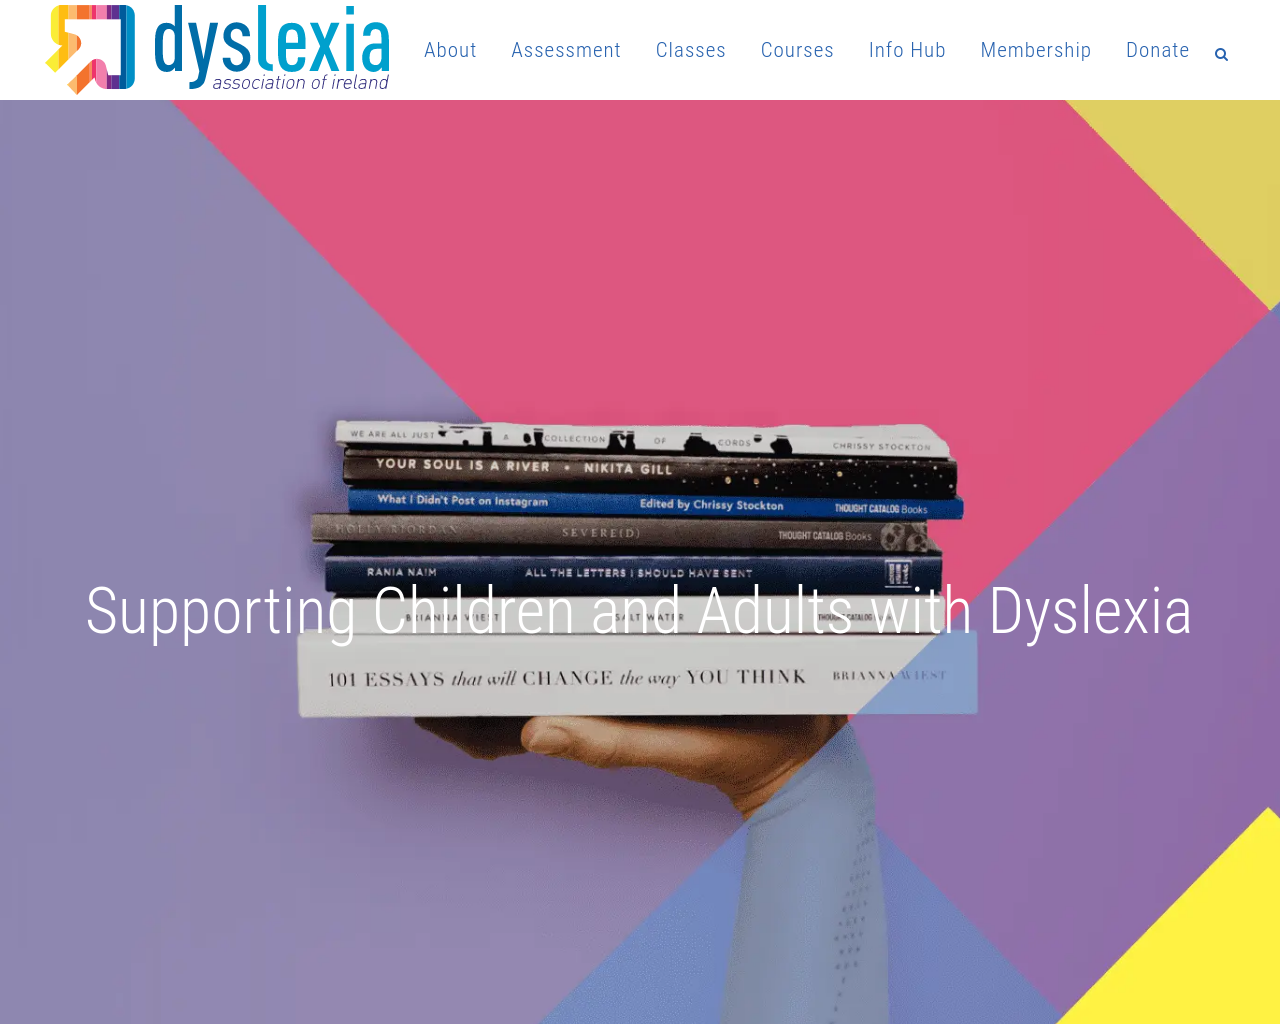 Dyslexia Association of Ireland